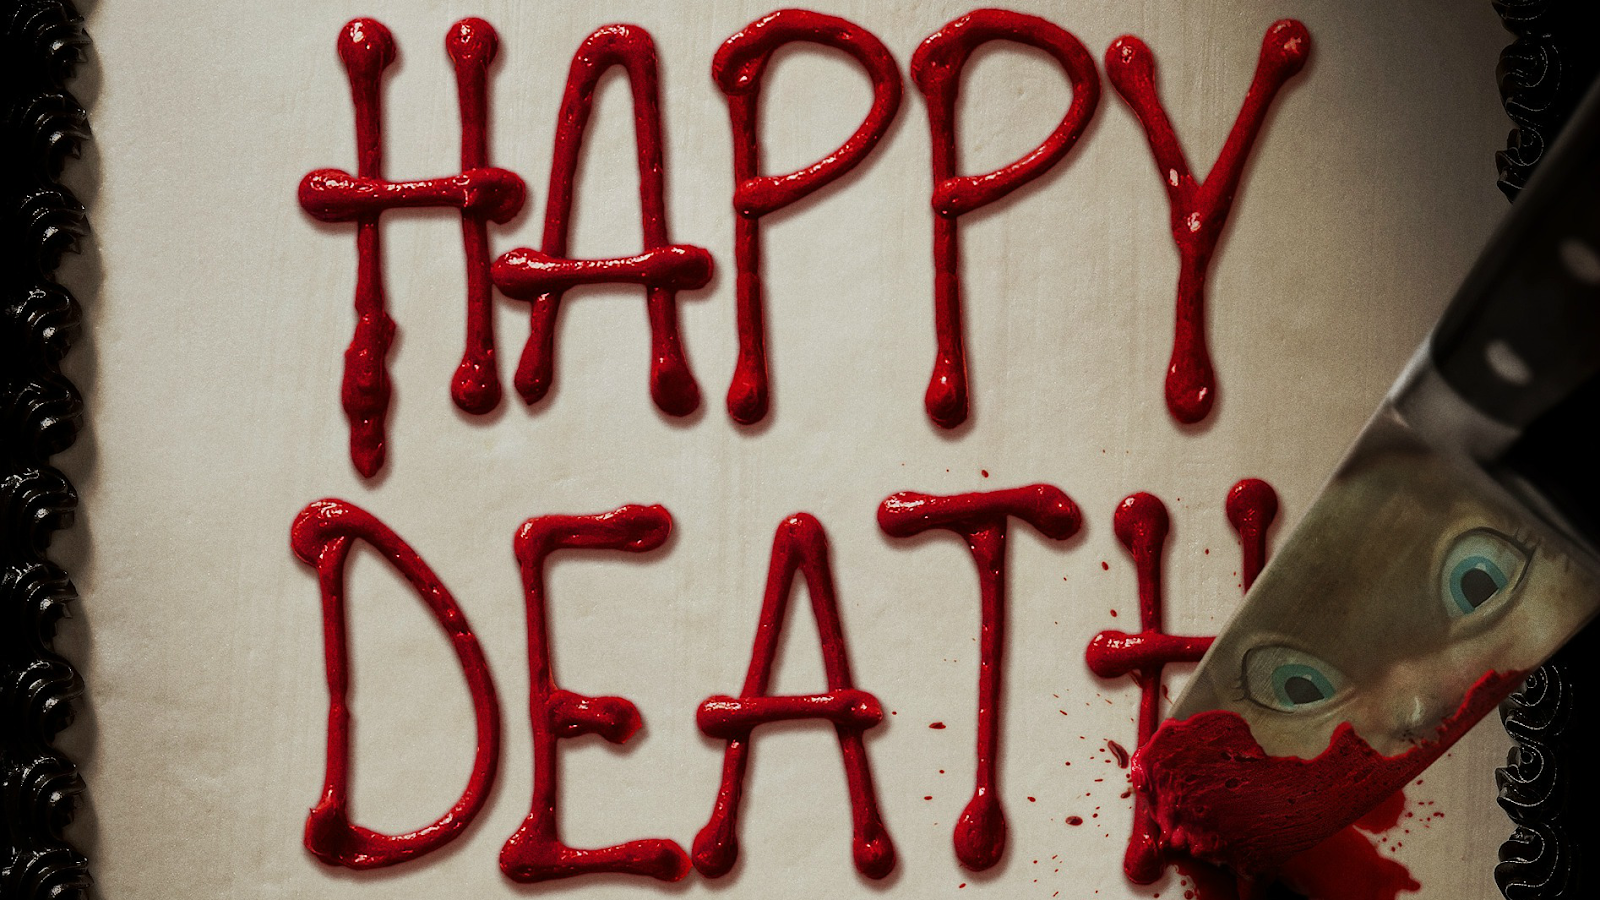 Eclectic Pop: Movie Review: 'Happy Death Day' (2017)